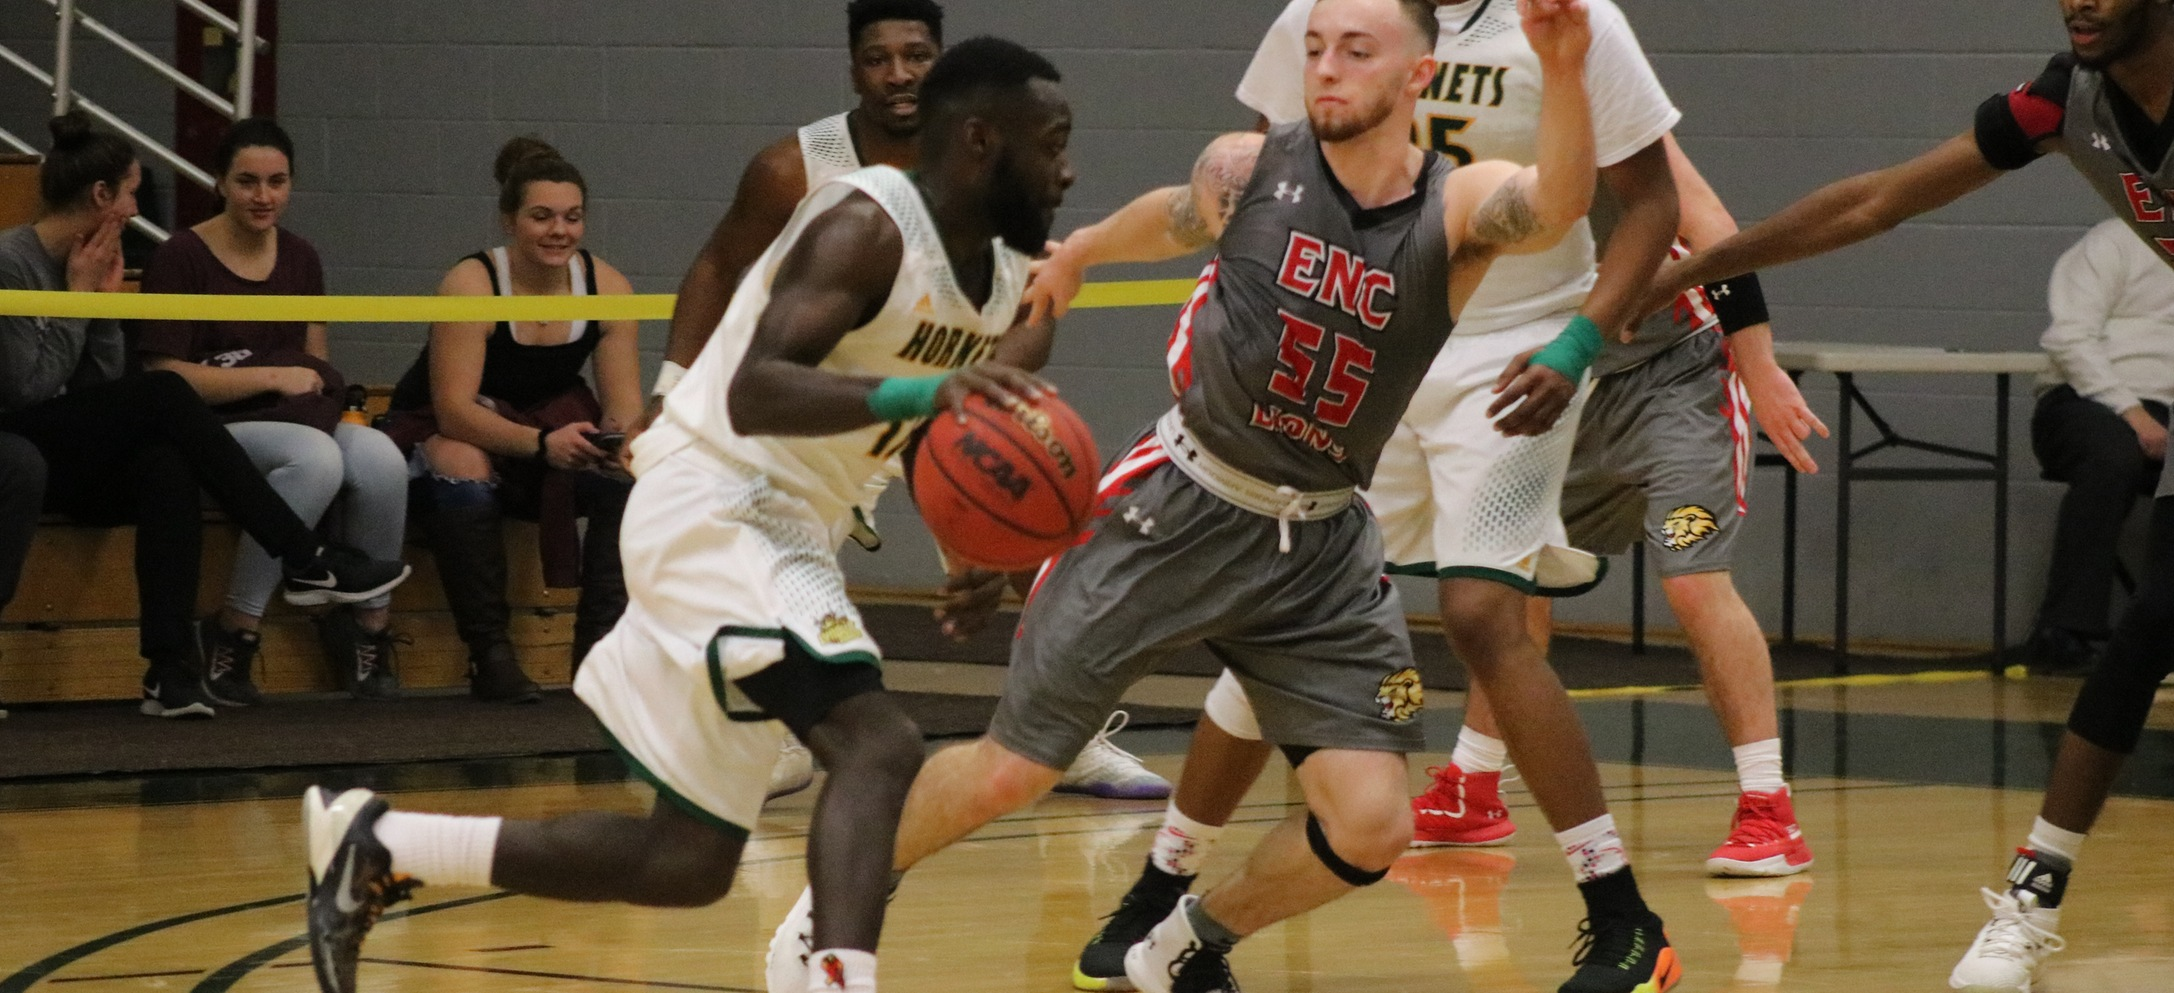 Hornet men stage strong second half rally that comes up just short at SUNY Delhi